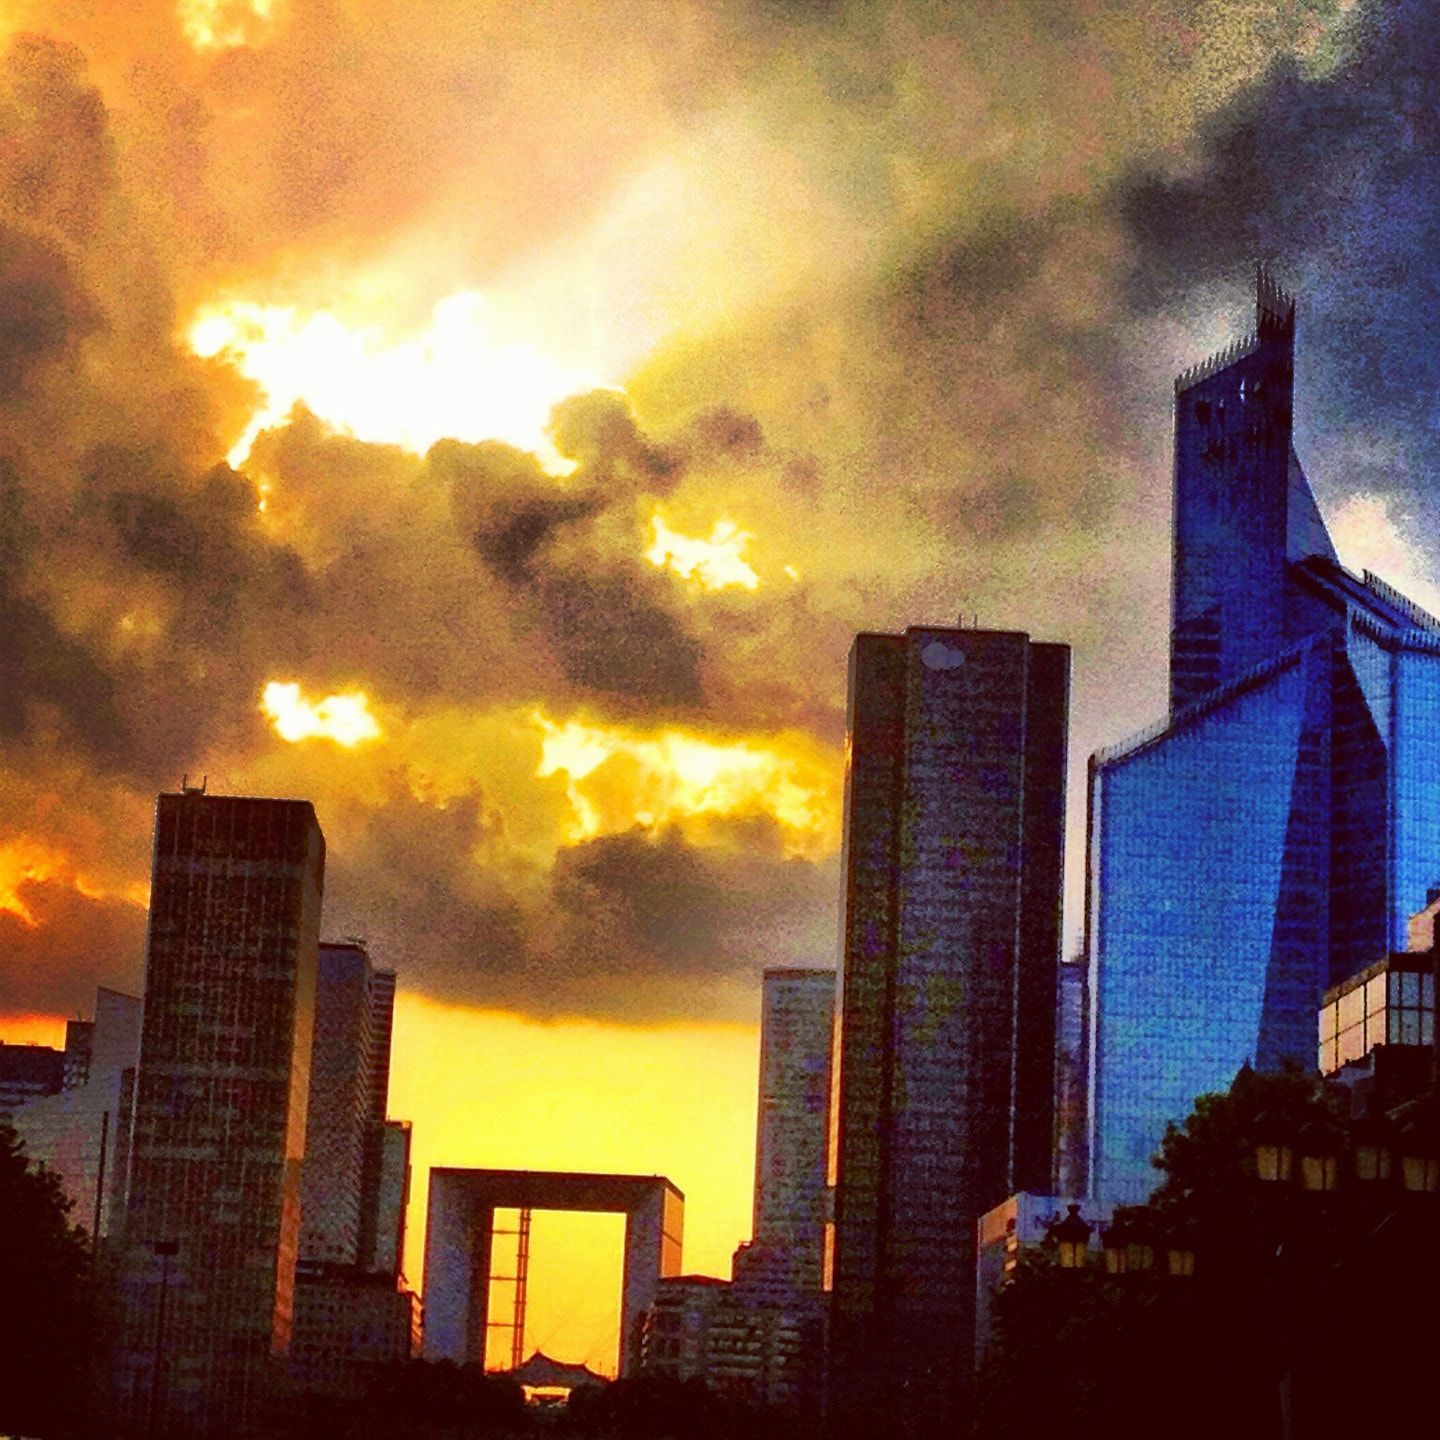 Photograph La défense by Sandrine Andro on 500px